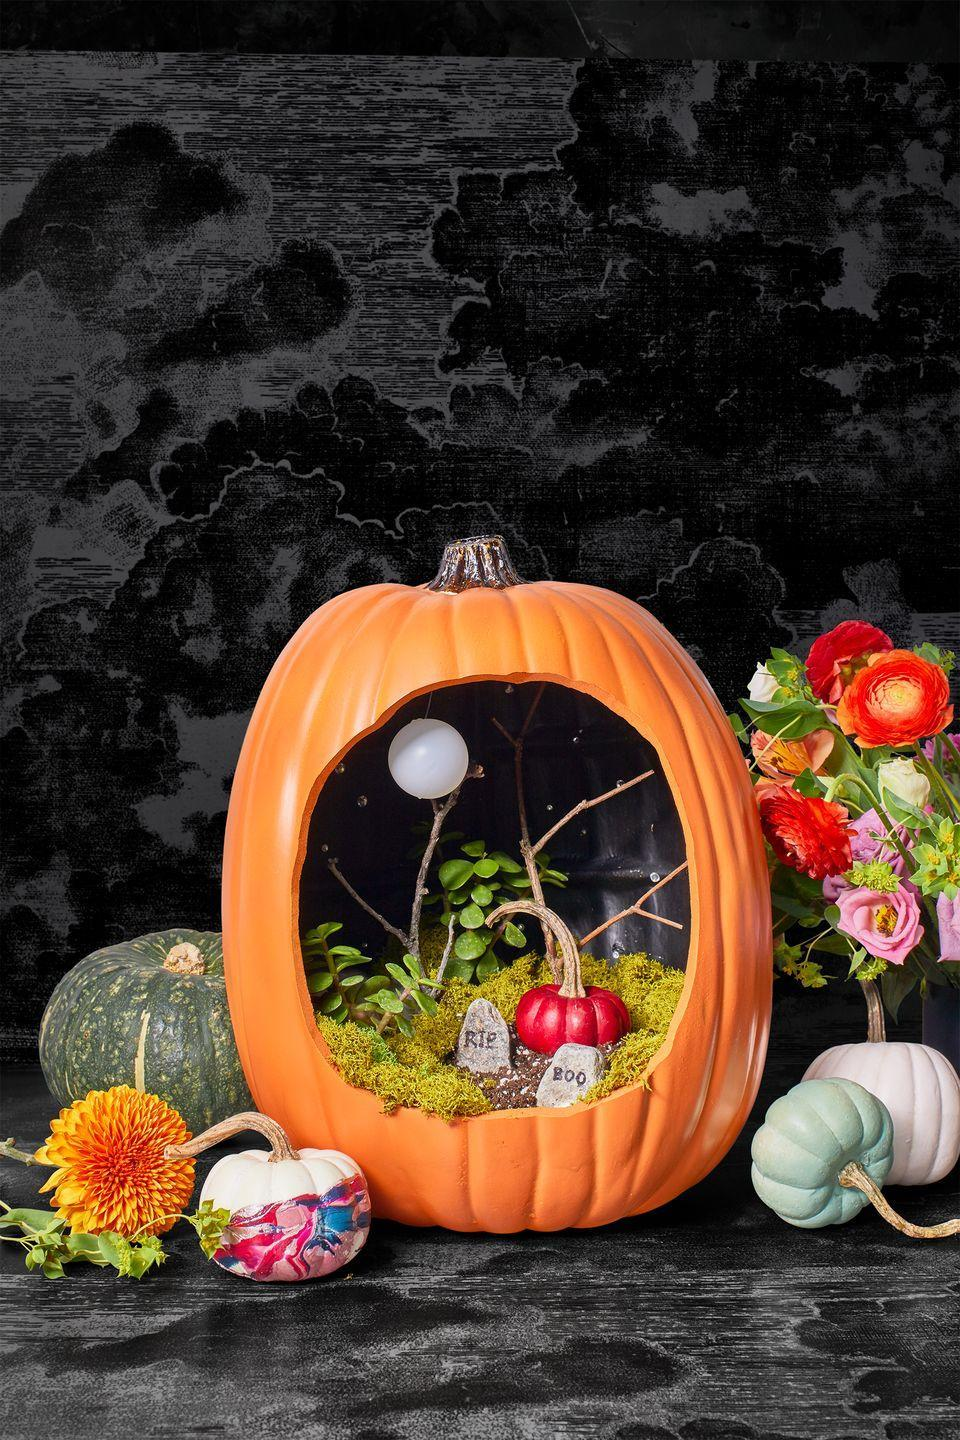 """<p>Add drama to your carved pumpkin by filling it with everything from reindeer moss and twigs to mini headstones. Complete the over-the-top design with a full moon (a Ping-Pong ball that you can easily hang from a thin string). </p><p><a class=""""link rapid-noclick-resp"""" href=""""https://www.amazon.com/SuperMoss-23080-Reindeer-Moss-Preserved/dp/B01C5RTP7Y/ref=sr_1_4?tag=syn-yahoo-20&ascsubtag=%5Bartid%7C10055.g.238%5Bsrc%7Cyahoo-us"""" rel=""""nofollow noopener"""" target=""""_blank"""" data-ylk=""""slk:SHOP REINDEER MOSS"""">SHOP REINDEER MOSS</a></p>"""